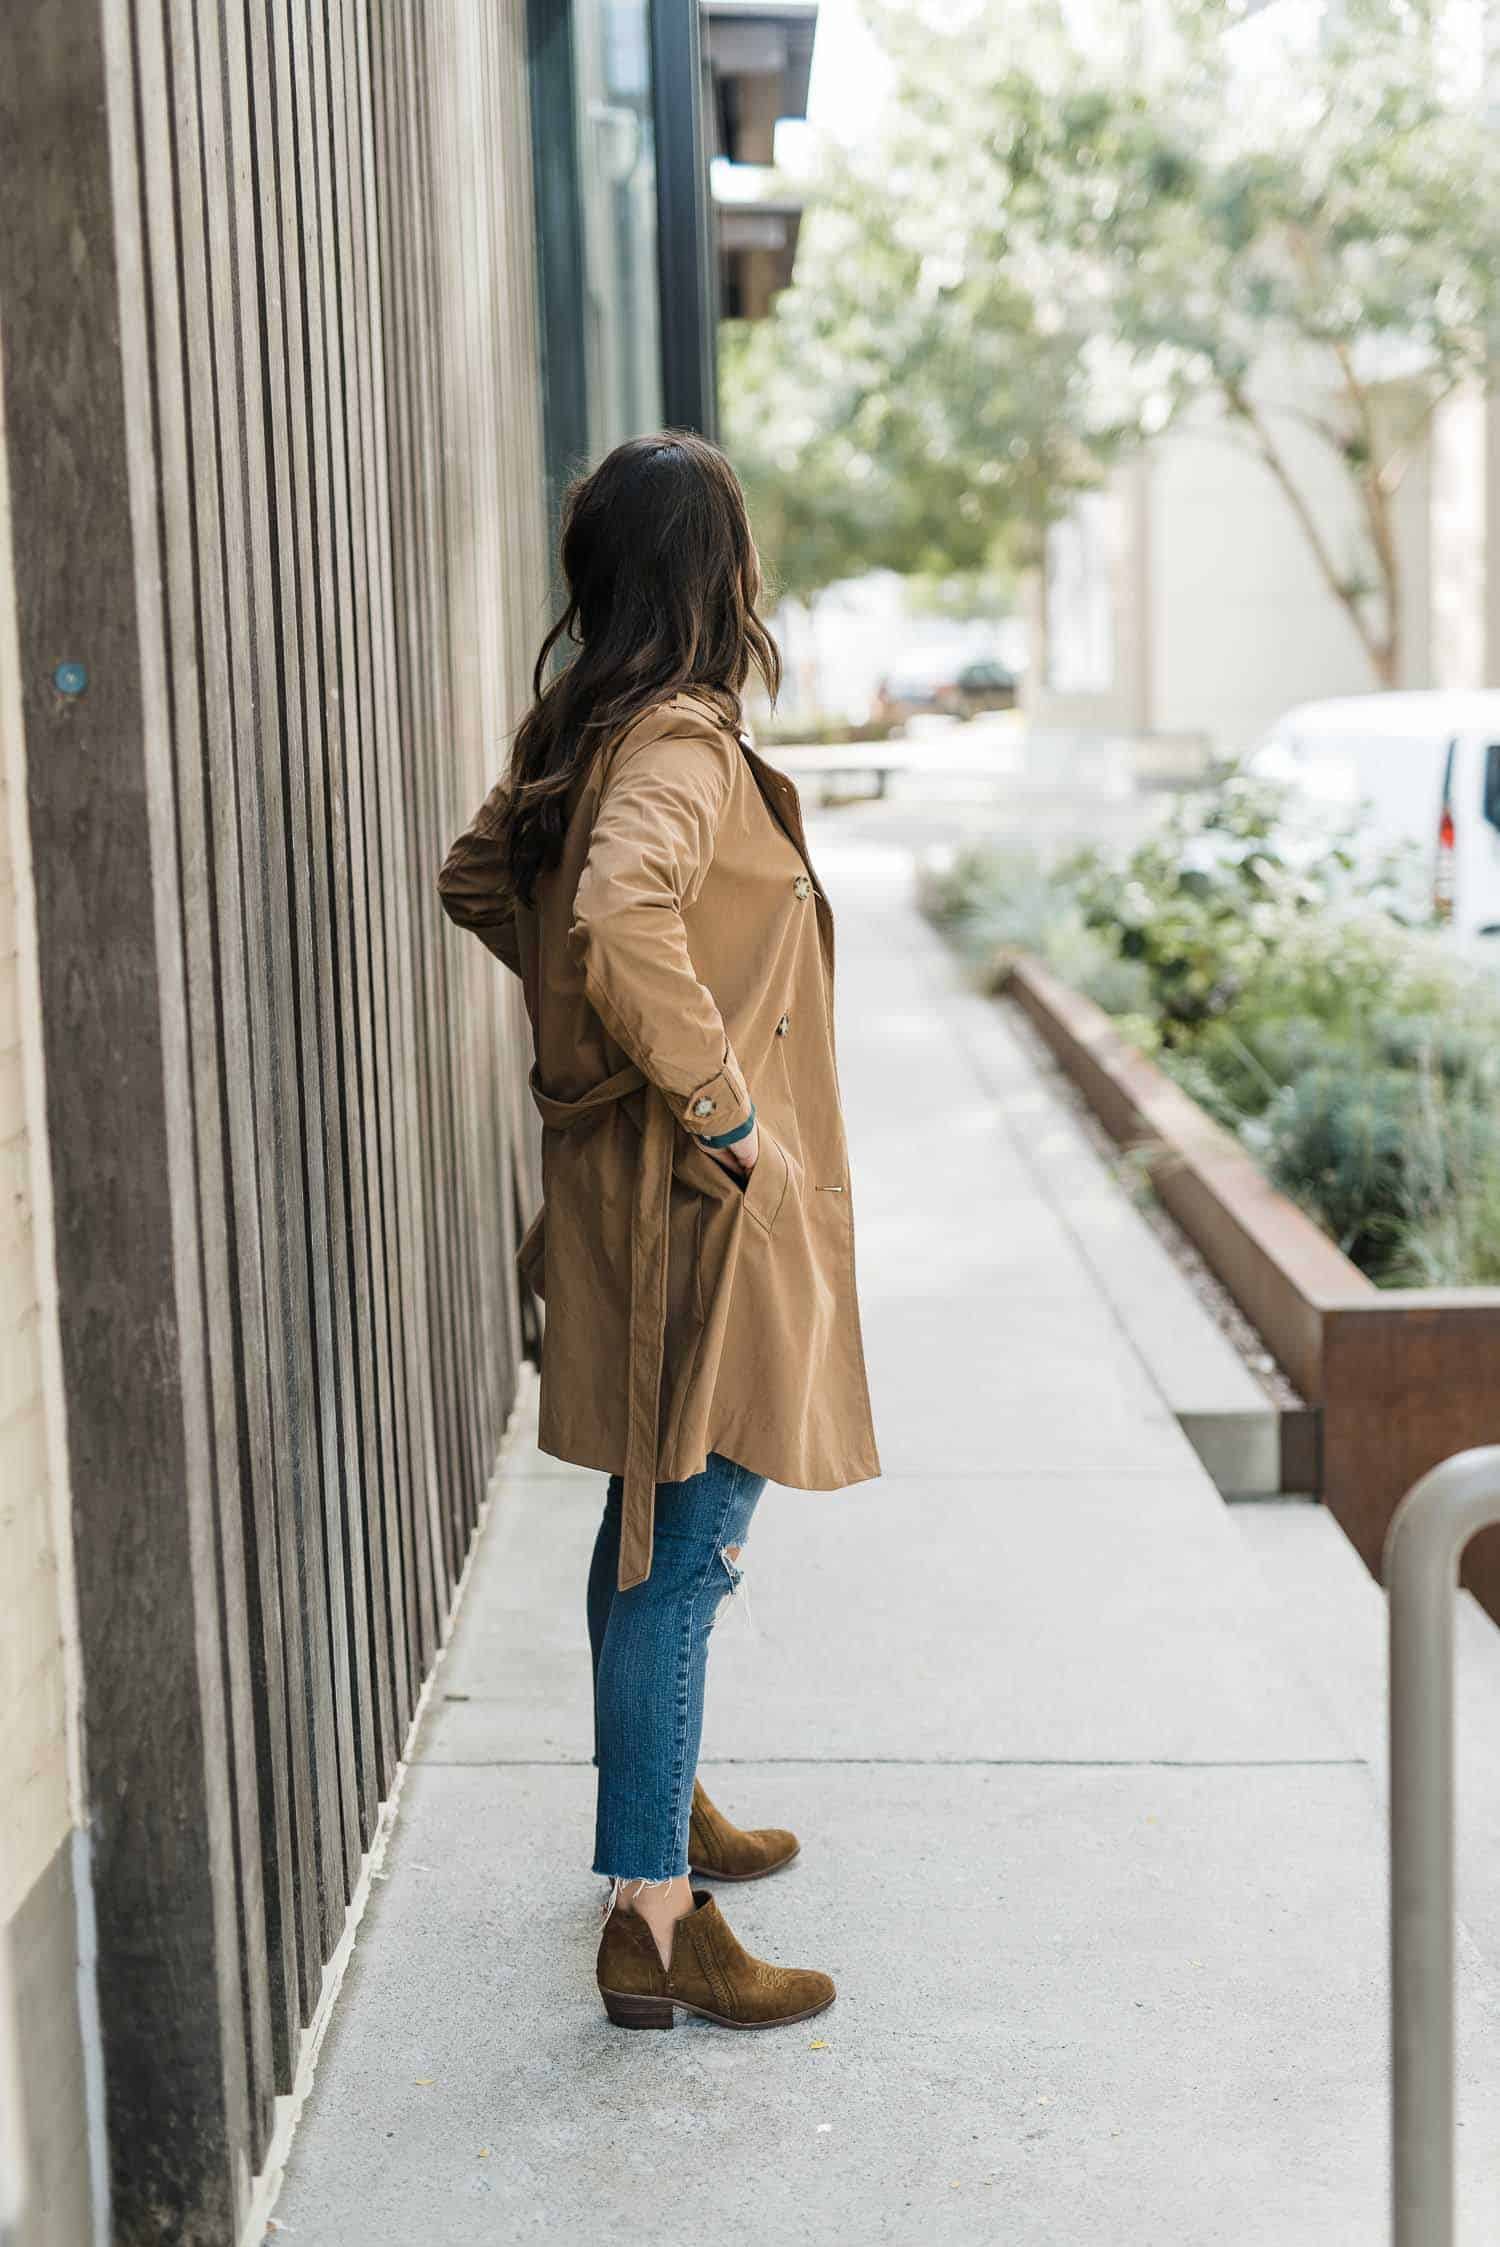 western trend, trench coat, outfit ideas - My Style Vita